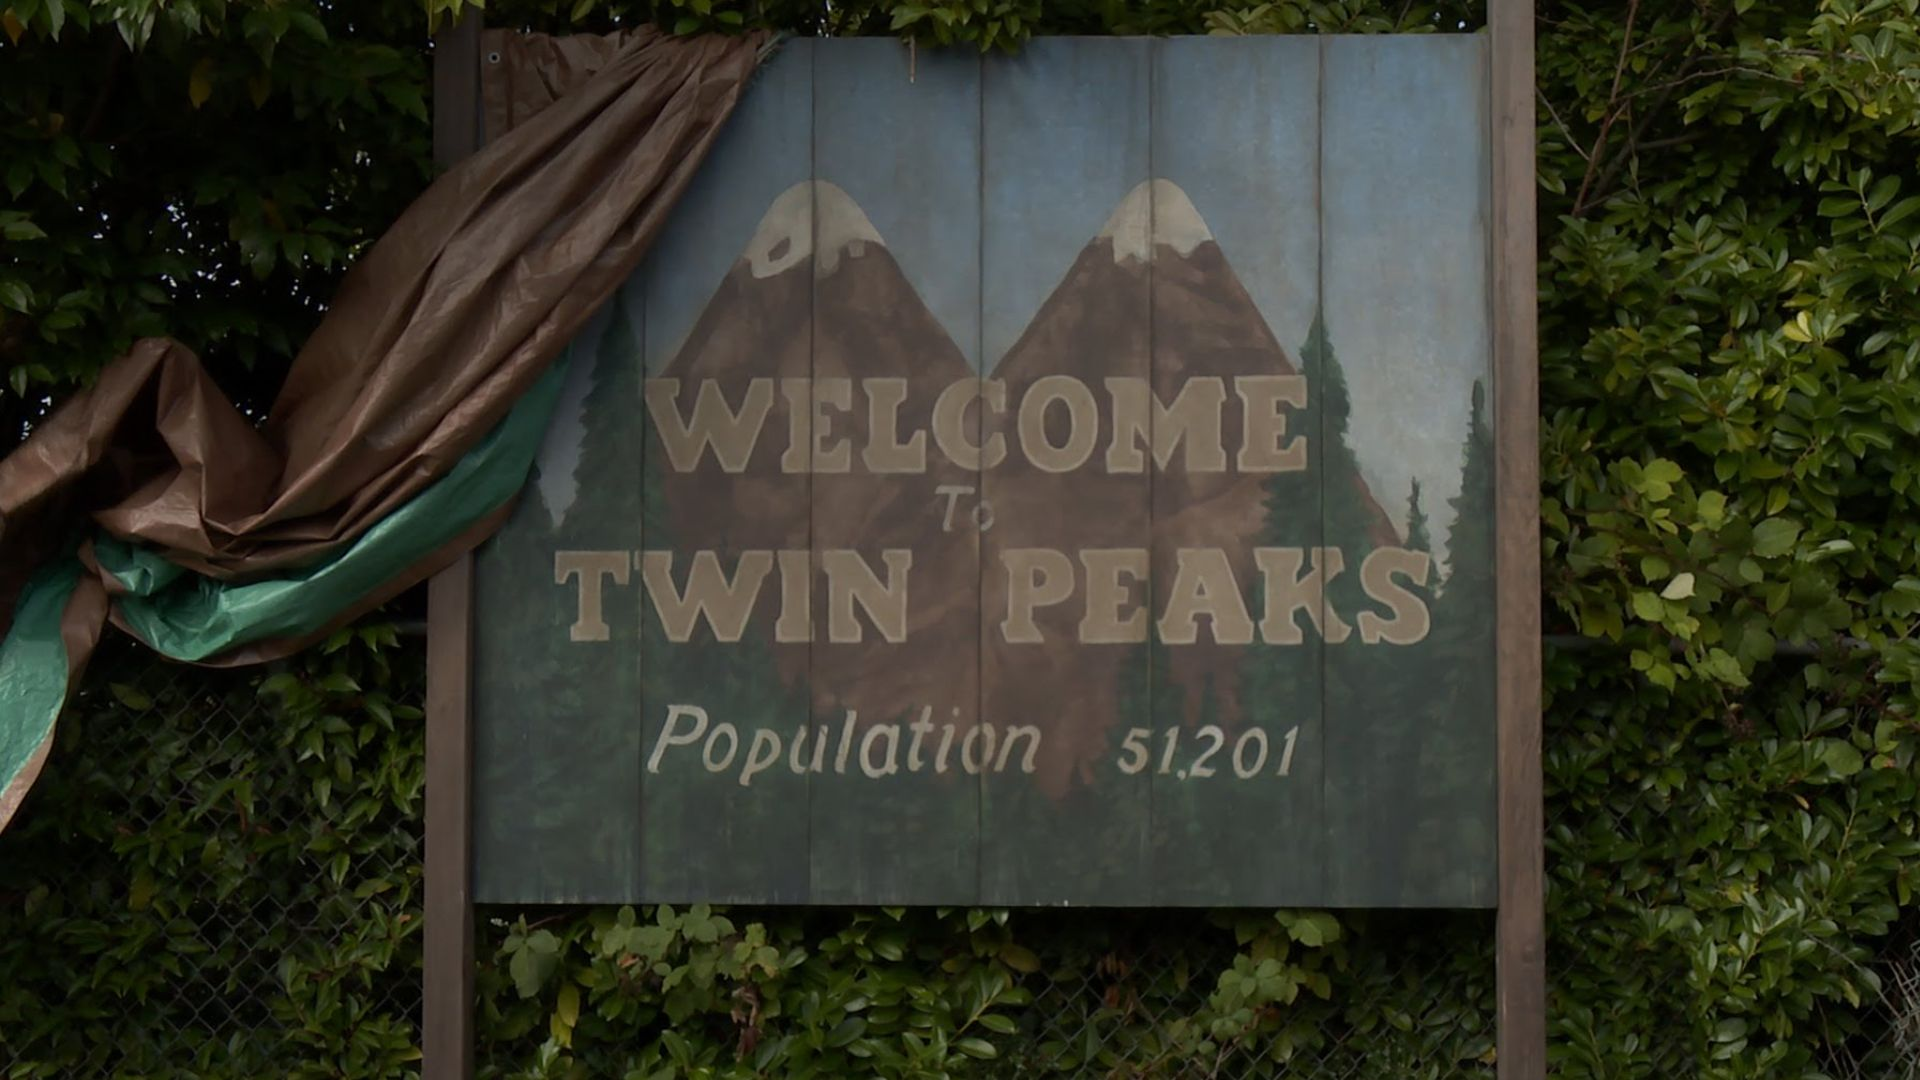 'Twin Peaks' Now In Production. Coming To Showtime In 2017 (